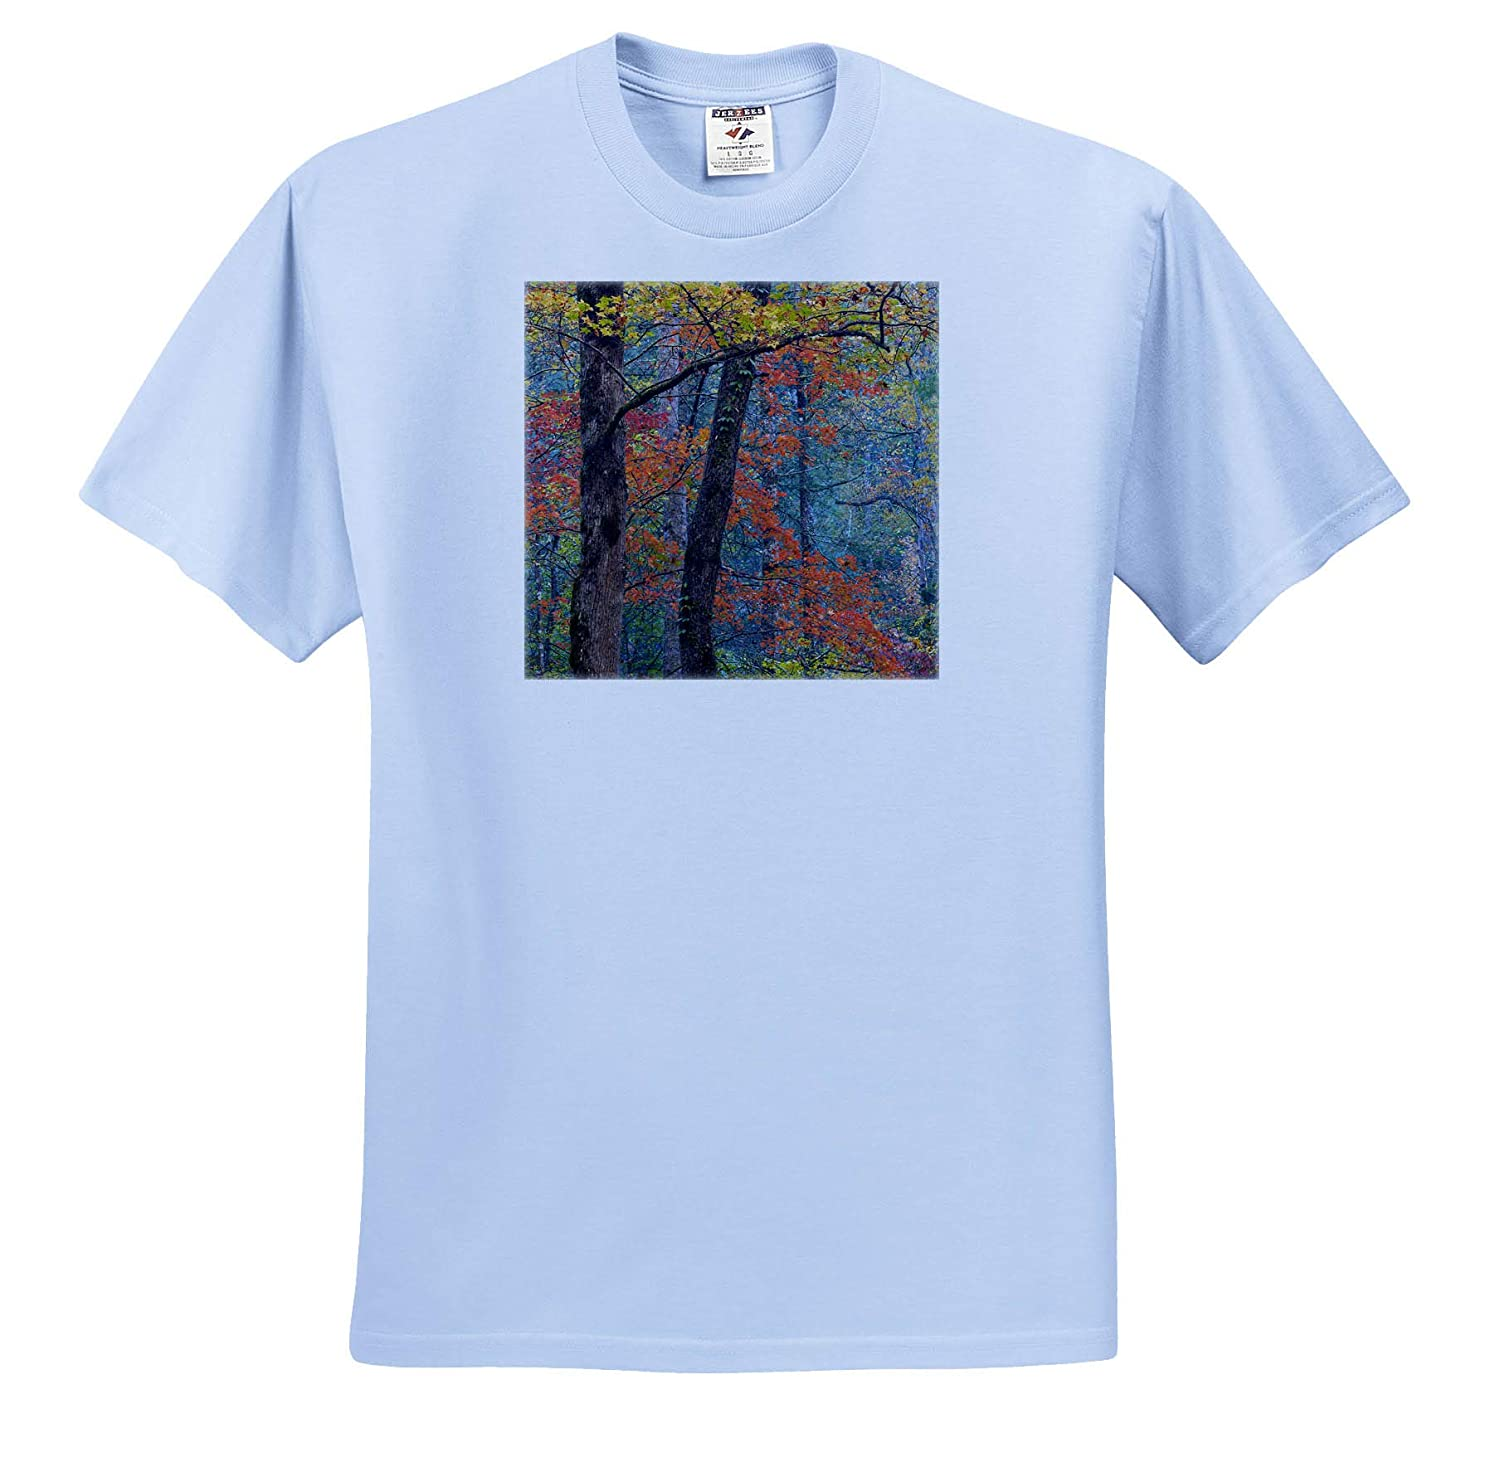 Tennessee USA ts/_315020 Forest Scenic in Autumn Autumn - Adult T-Shirt XL 3dRose Danita Delimont